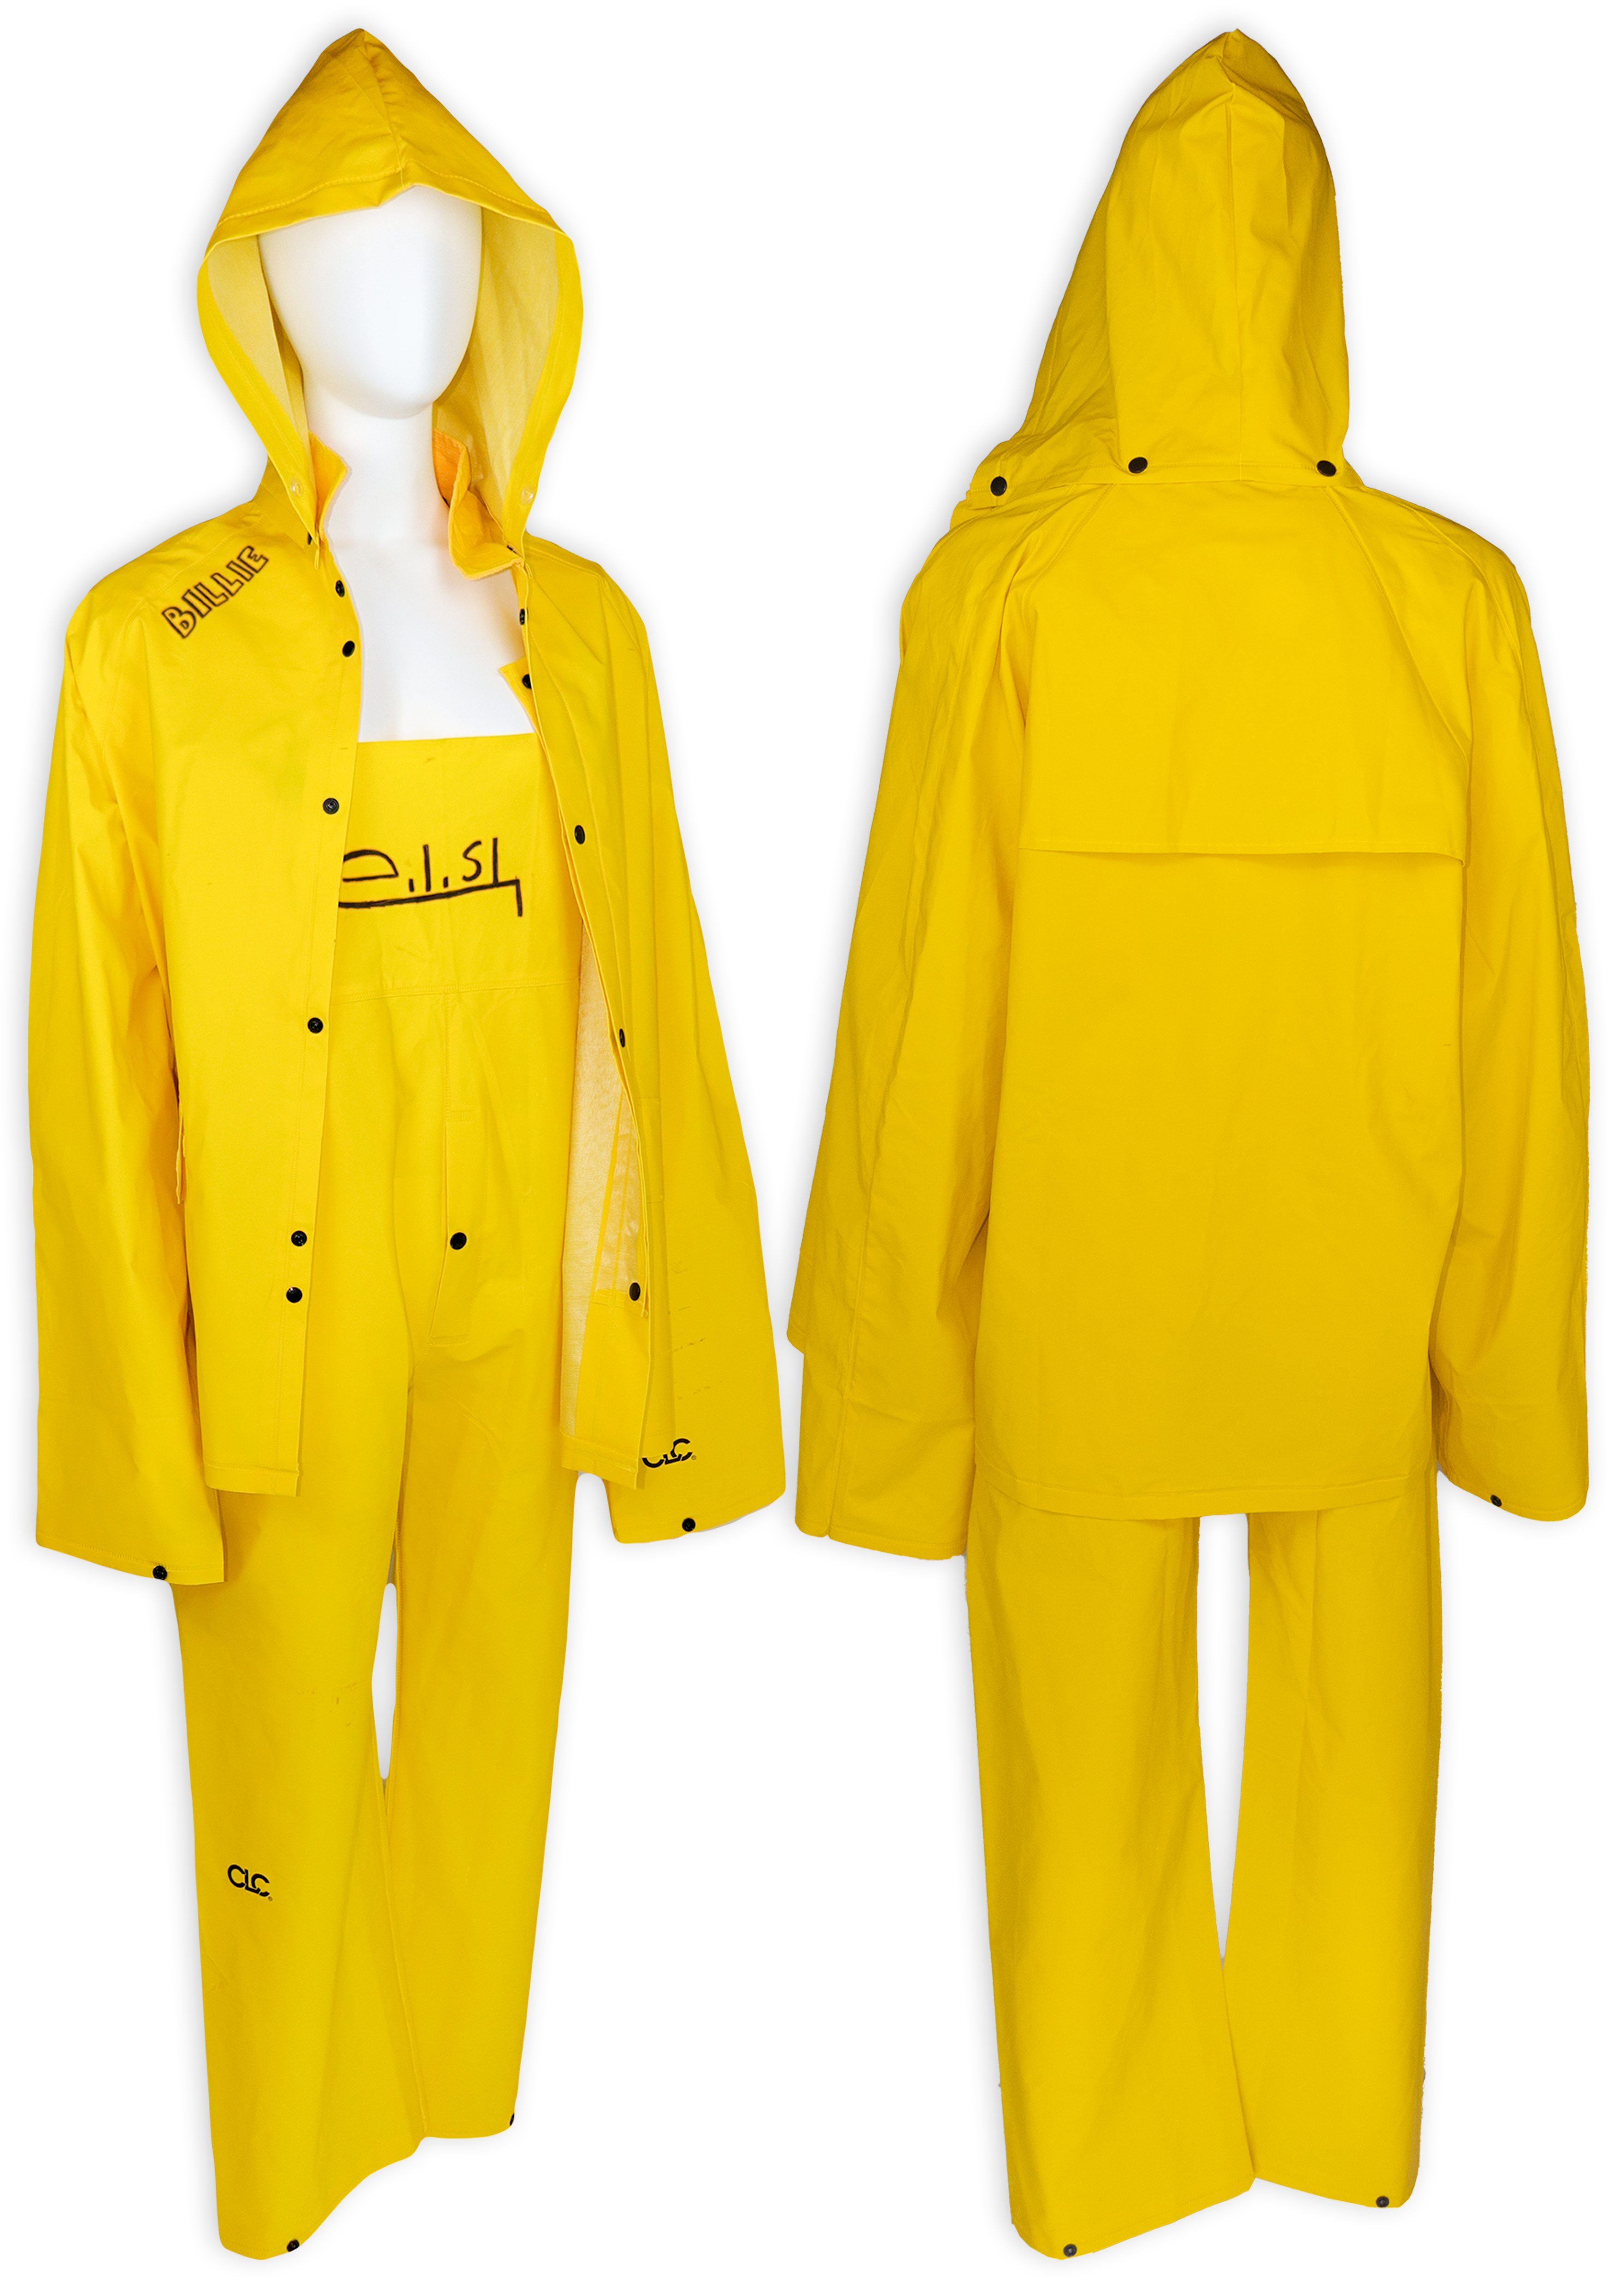 Lot Detail Billie Eilish Personally Owned Worn Signed Outfit